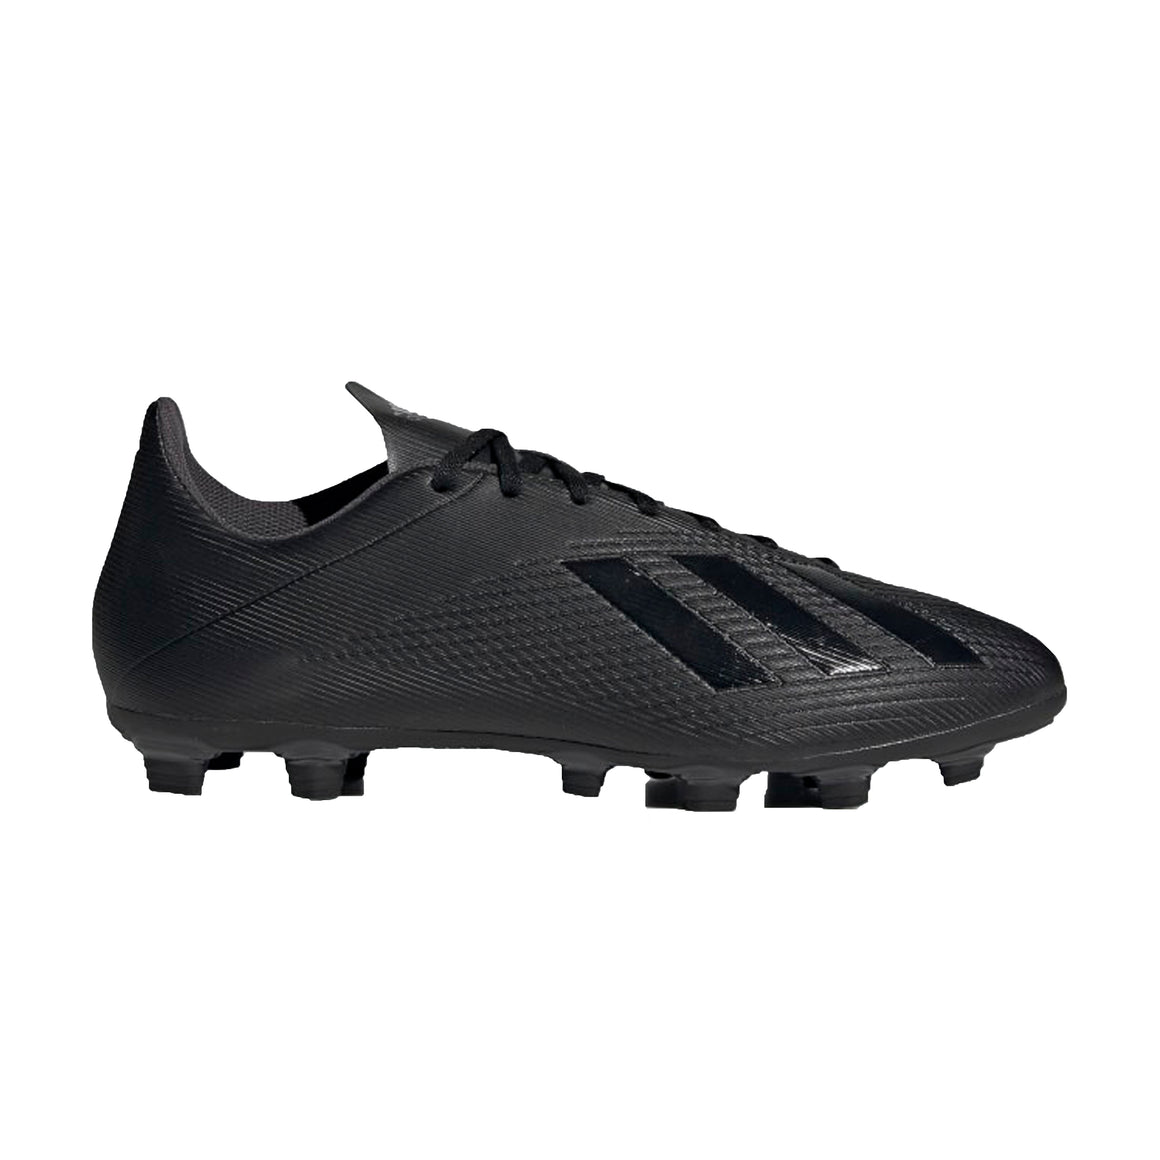 X19.4 FxG Football Boots for Men in Black